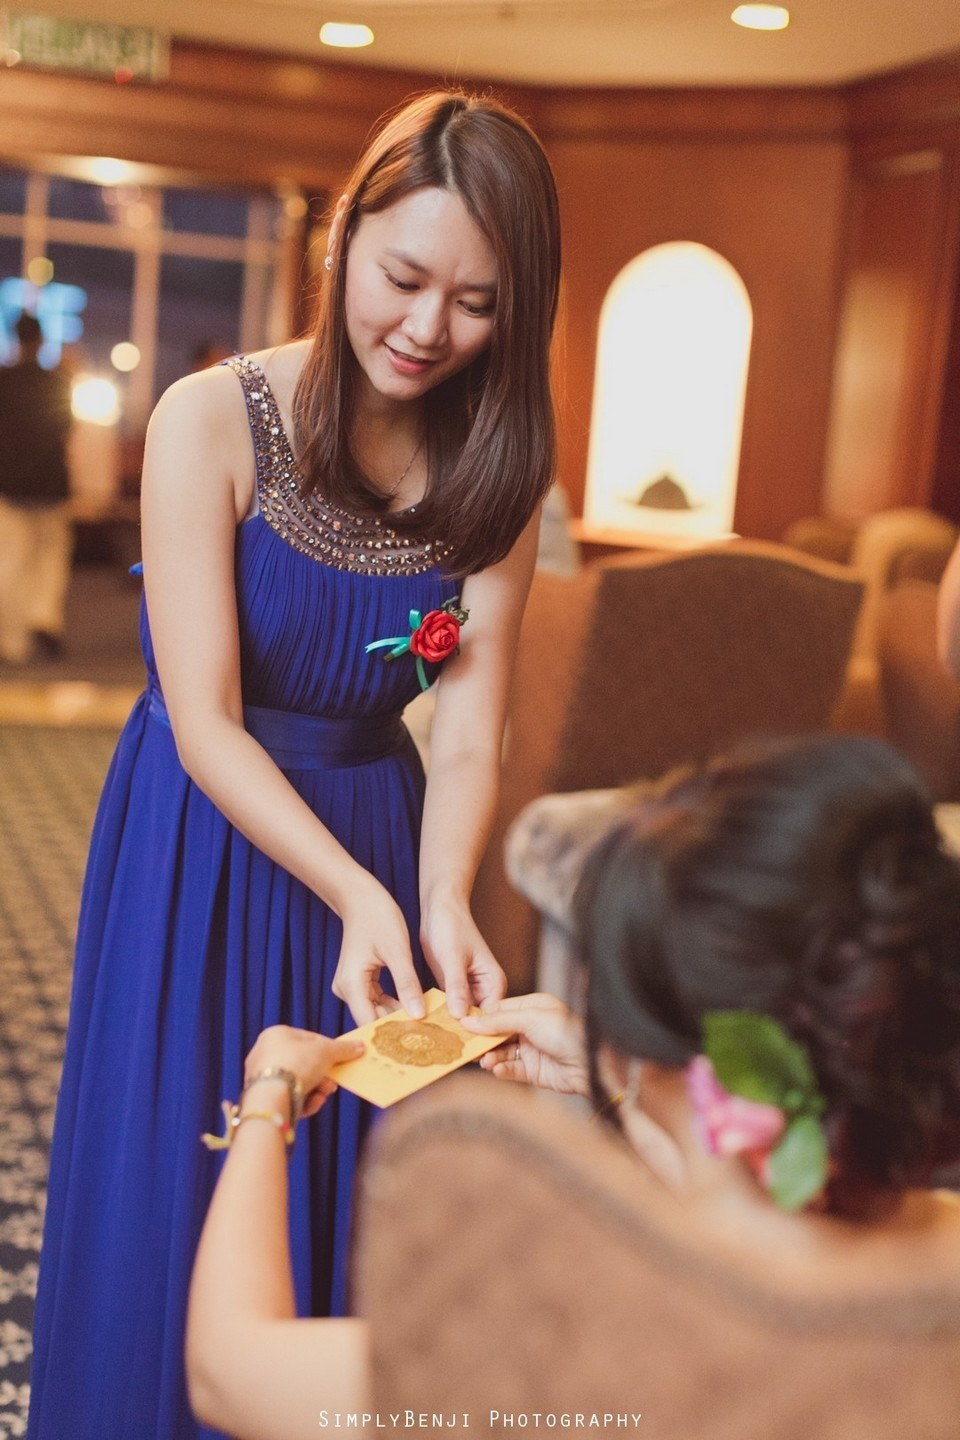 Tree House Wedding Gate Crashing Bankers Club Reception Dinner_KL Malaysia Wedding Photographer_20140920190658_029620140920190658_029620140920190658_0296